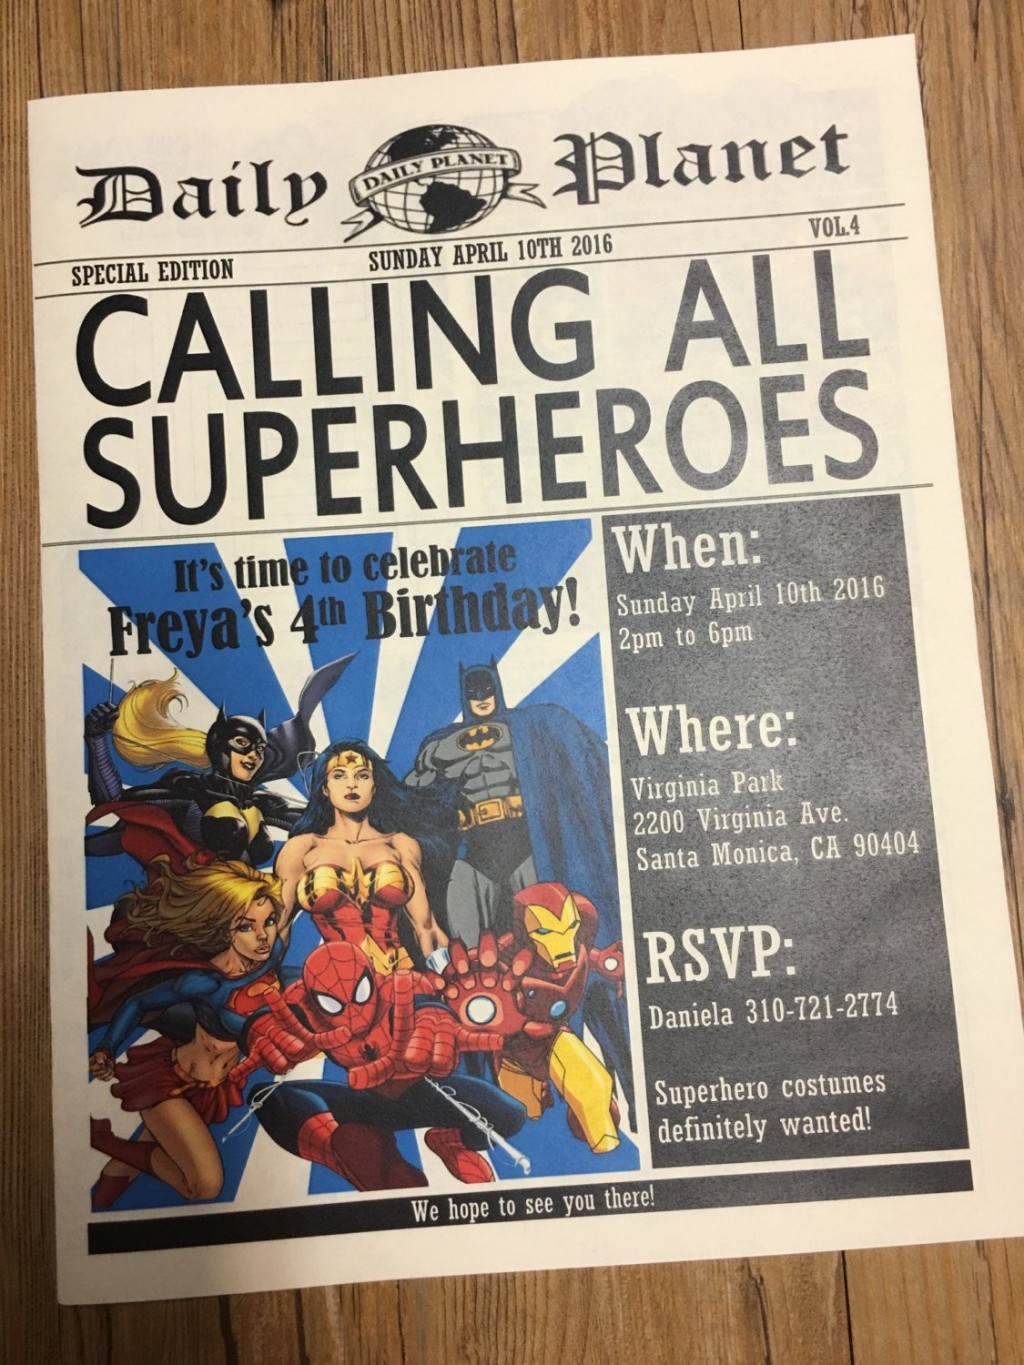 002 Archaicawful Superhero Newspaper Invitation Template Free Highest Quality Large